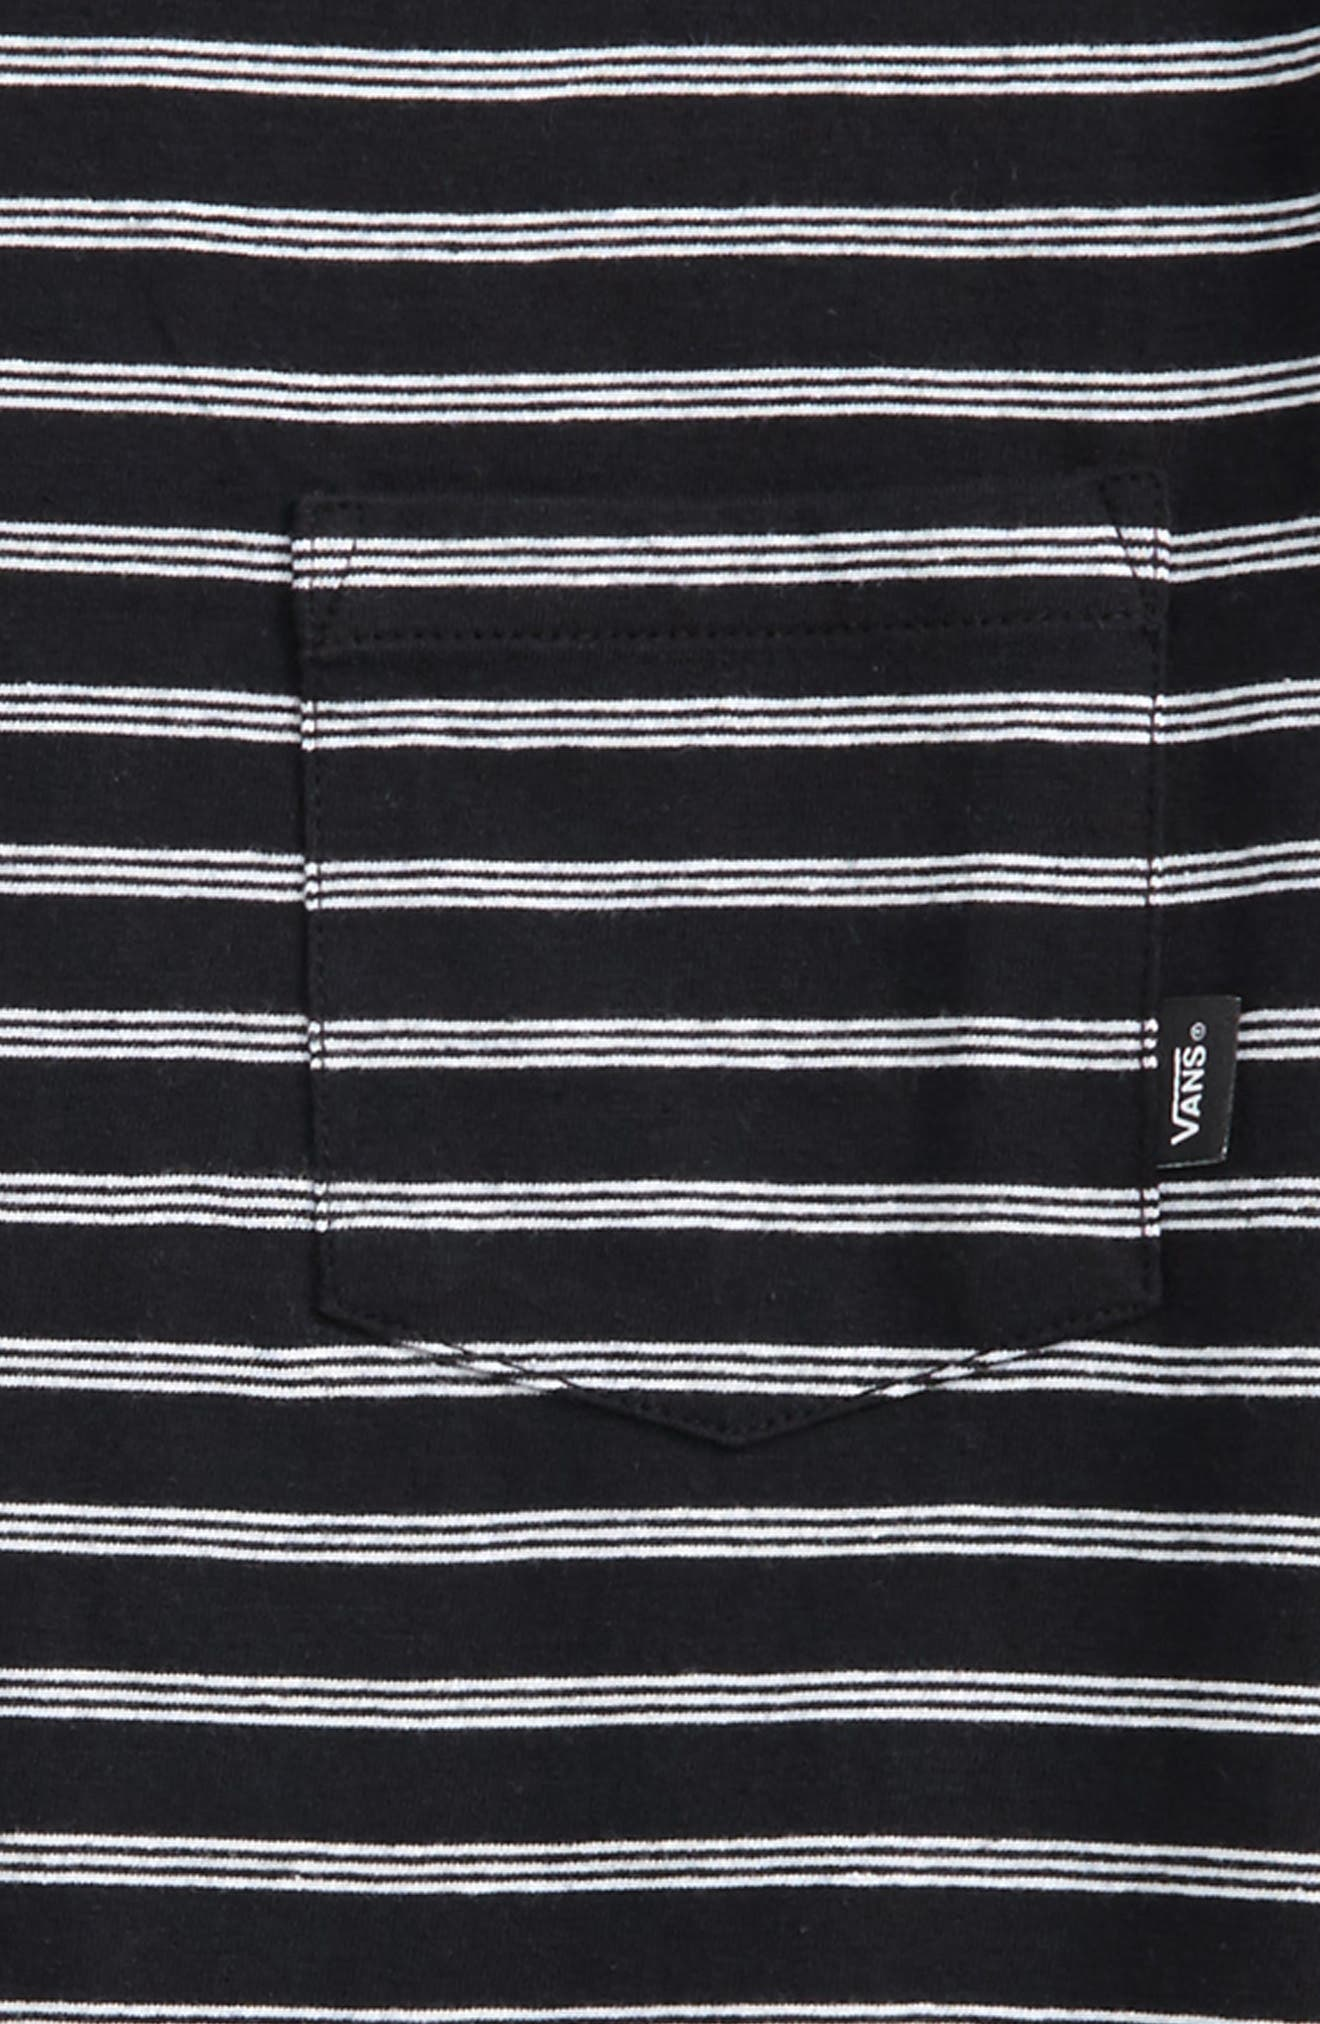 Lined Up Knit T-Shirt,                             Alternate thumbnail 2, color,                             001